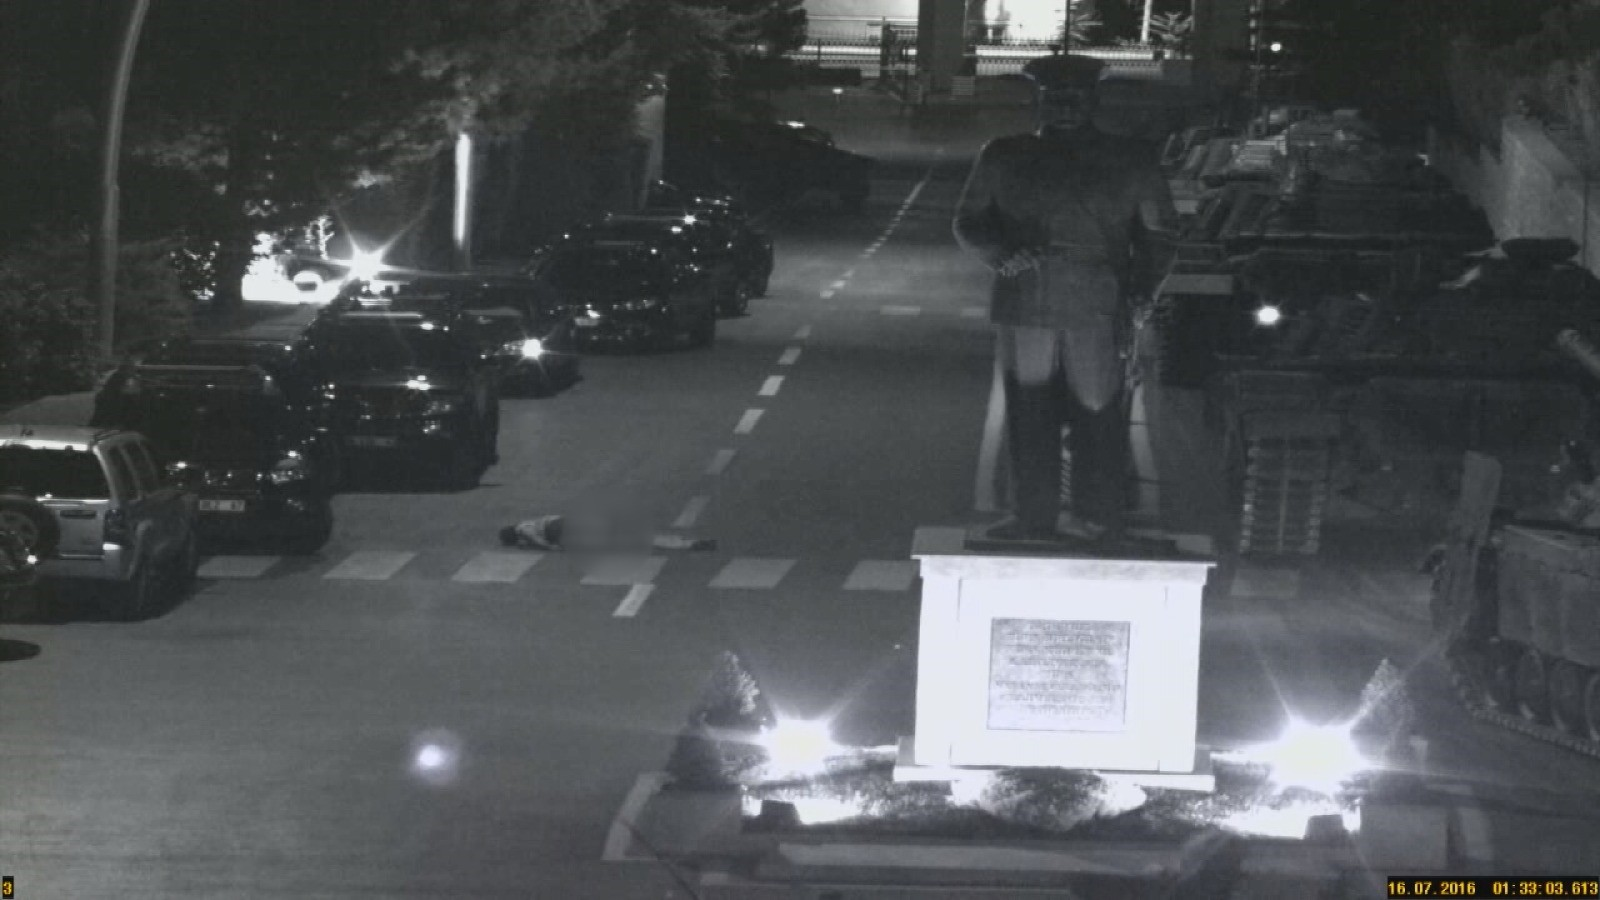 A surveillance camera image shows a victimu2019s body lying on the ground after the soldiers dumped it from a military vehicle.